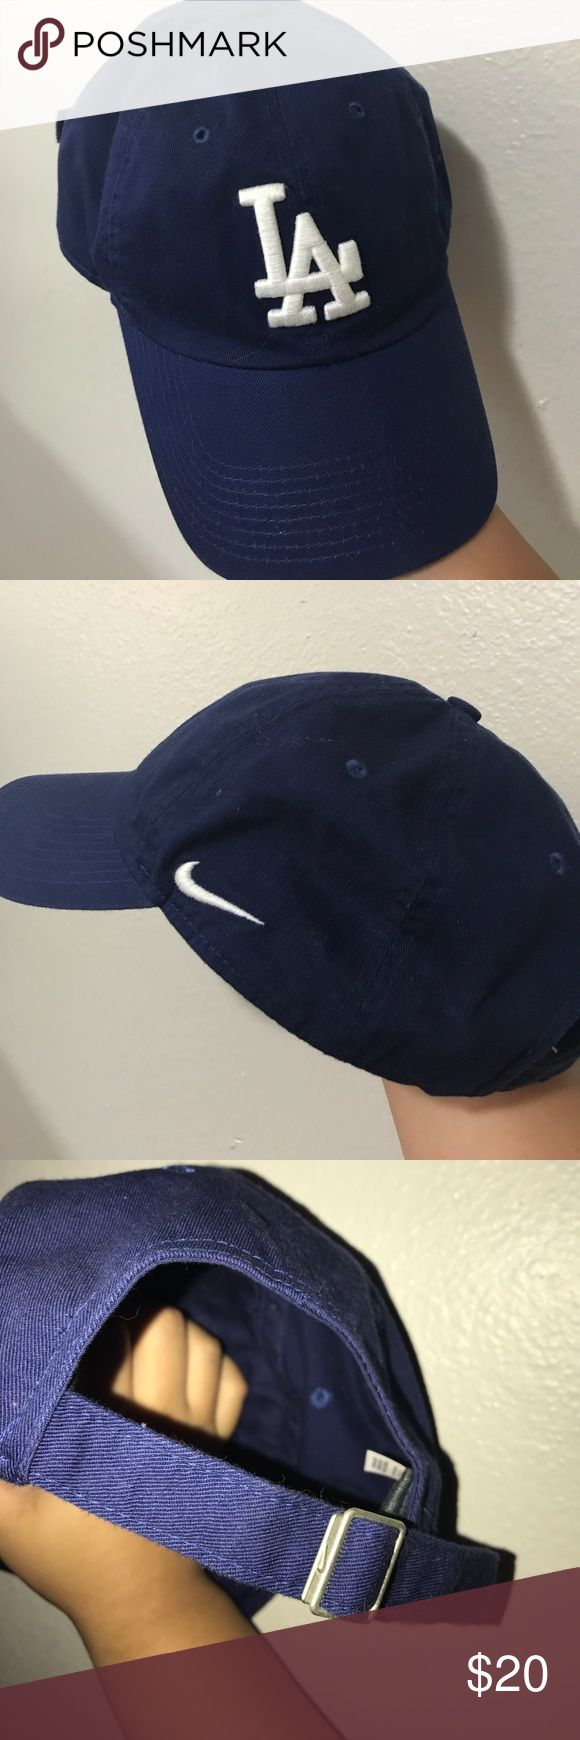 LA hat Nike Blue and white hat Nike Accessories Hats